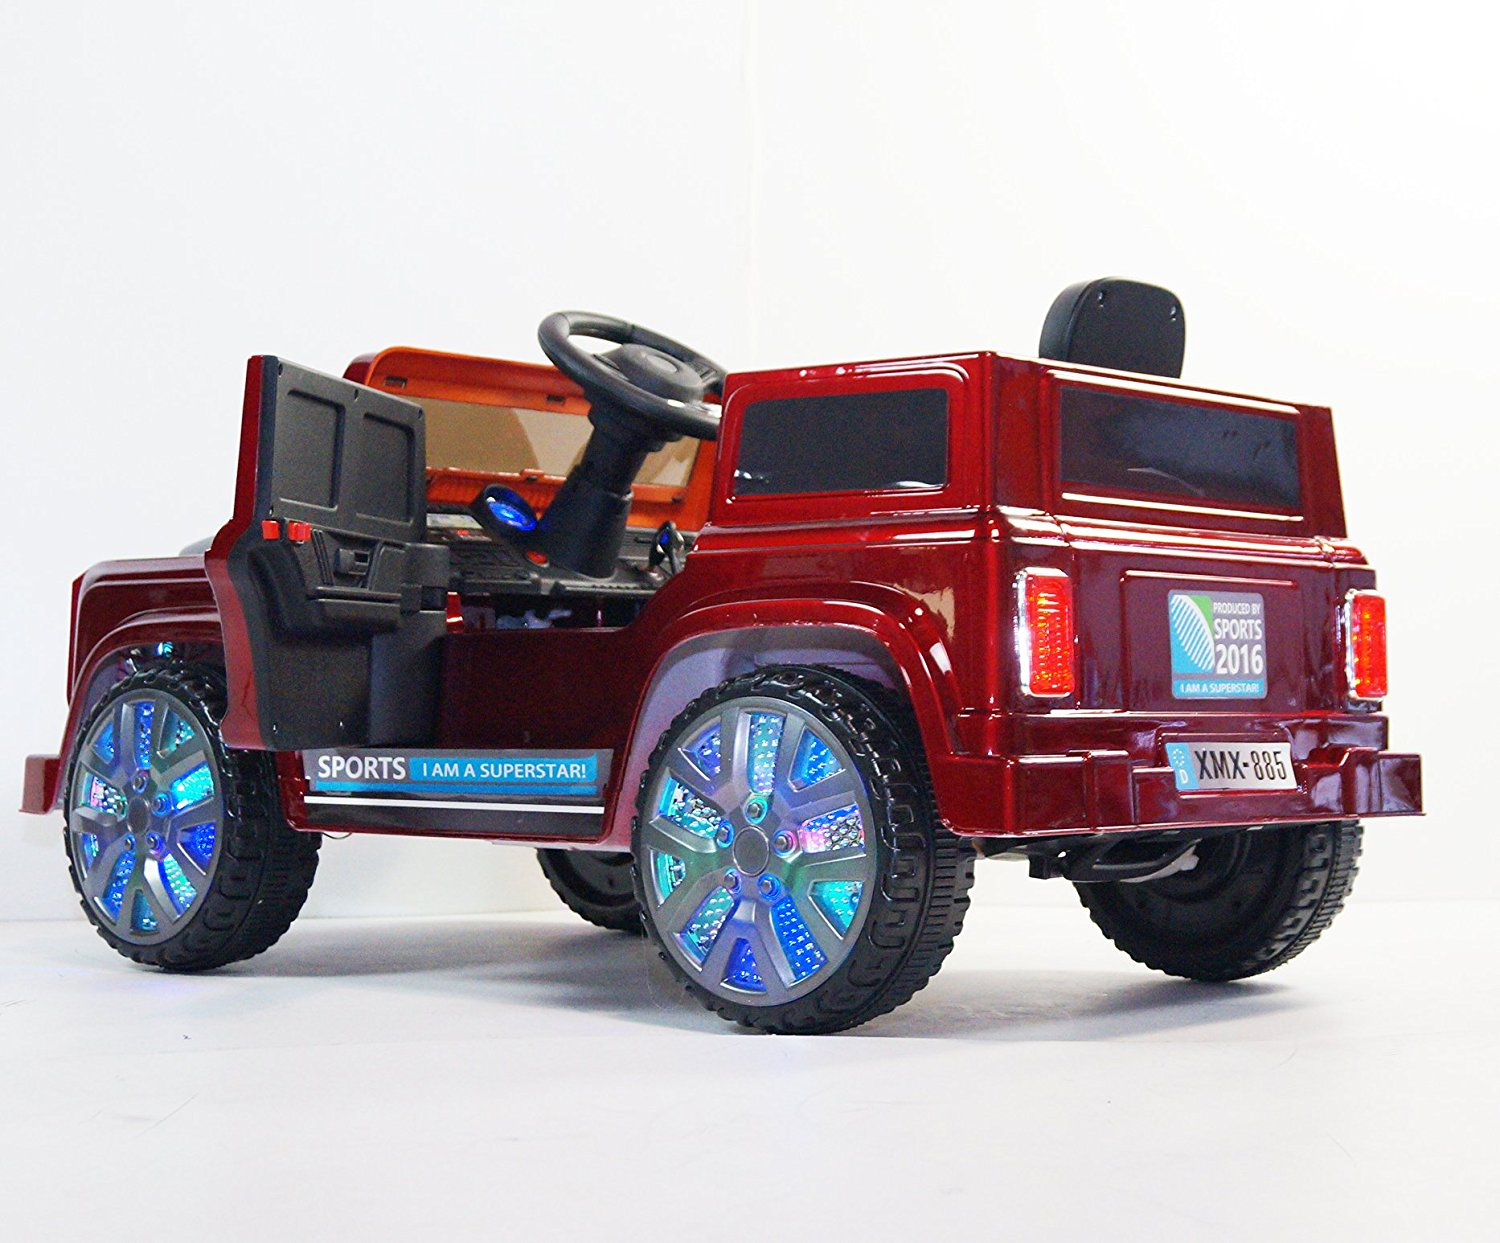 Ride on car LAND ROVER style. 3 speed. MP3. Battery operated. With remote control. R/C. For kids, boys and girls, from 2 to 5 years. Car on electric battery 12V total. Two Electric motor.